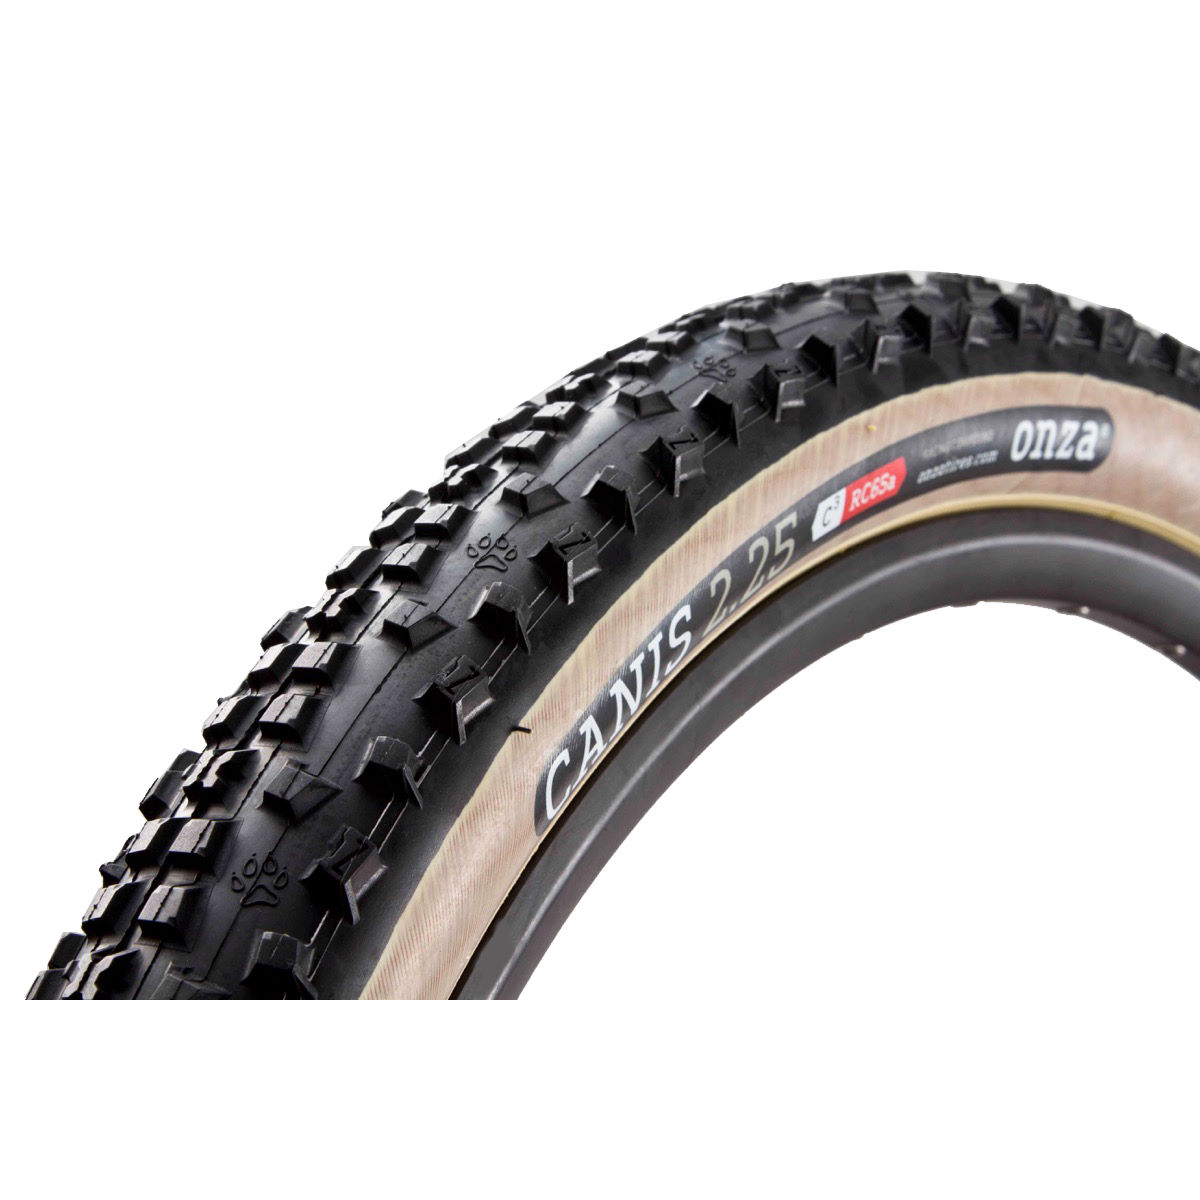 Onza Canis Skinwall Edition Folding MTB Tyre - 2.25 29'' Black / Tan Pneus descente et freeride